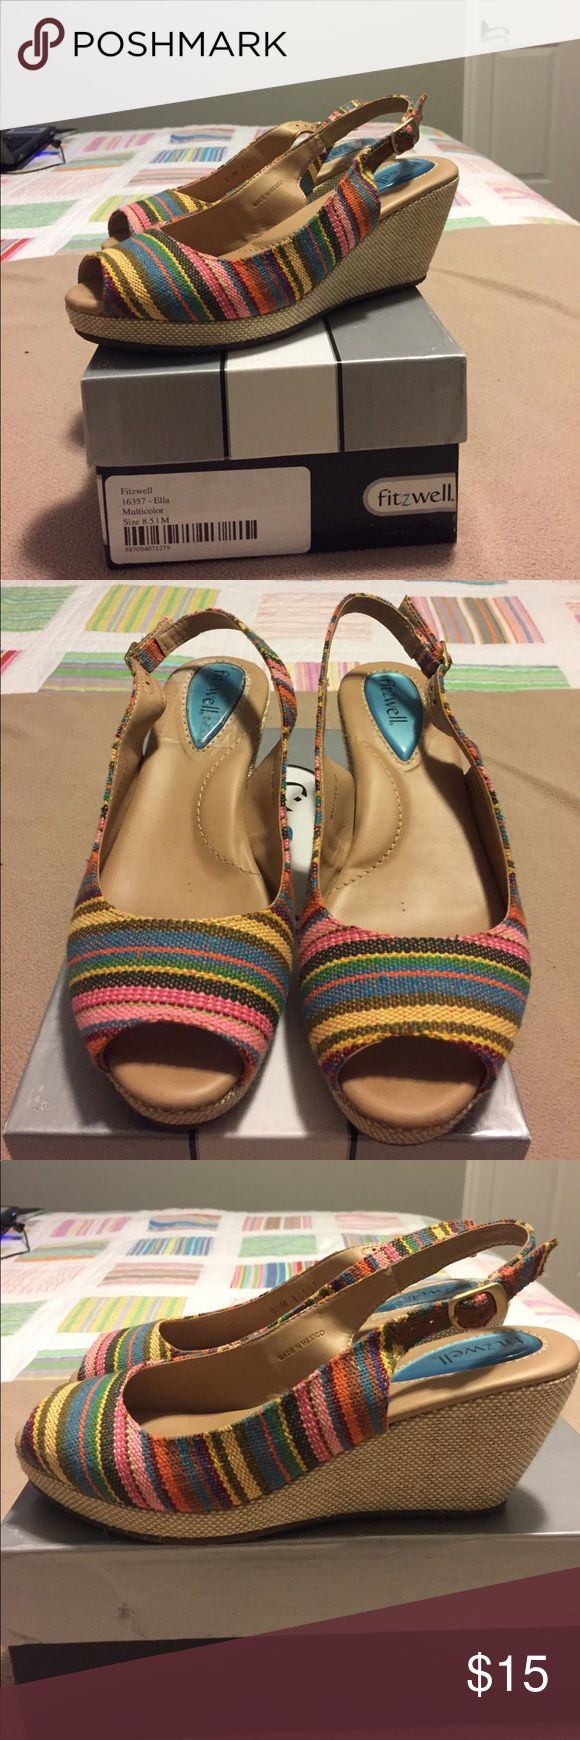 Fitzwell multicolored stripe wedge peep sandal 8.5 Fitzwell Ella multicolored stripe wedge peep toe sling back sandal, size 8.5. 3-inch heel with a 3/4-inch platform. Worn a few times but in great condition. Fitzwell Shoes Wedges